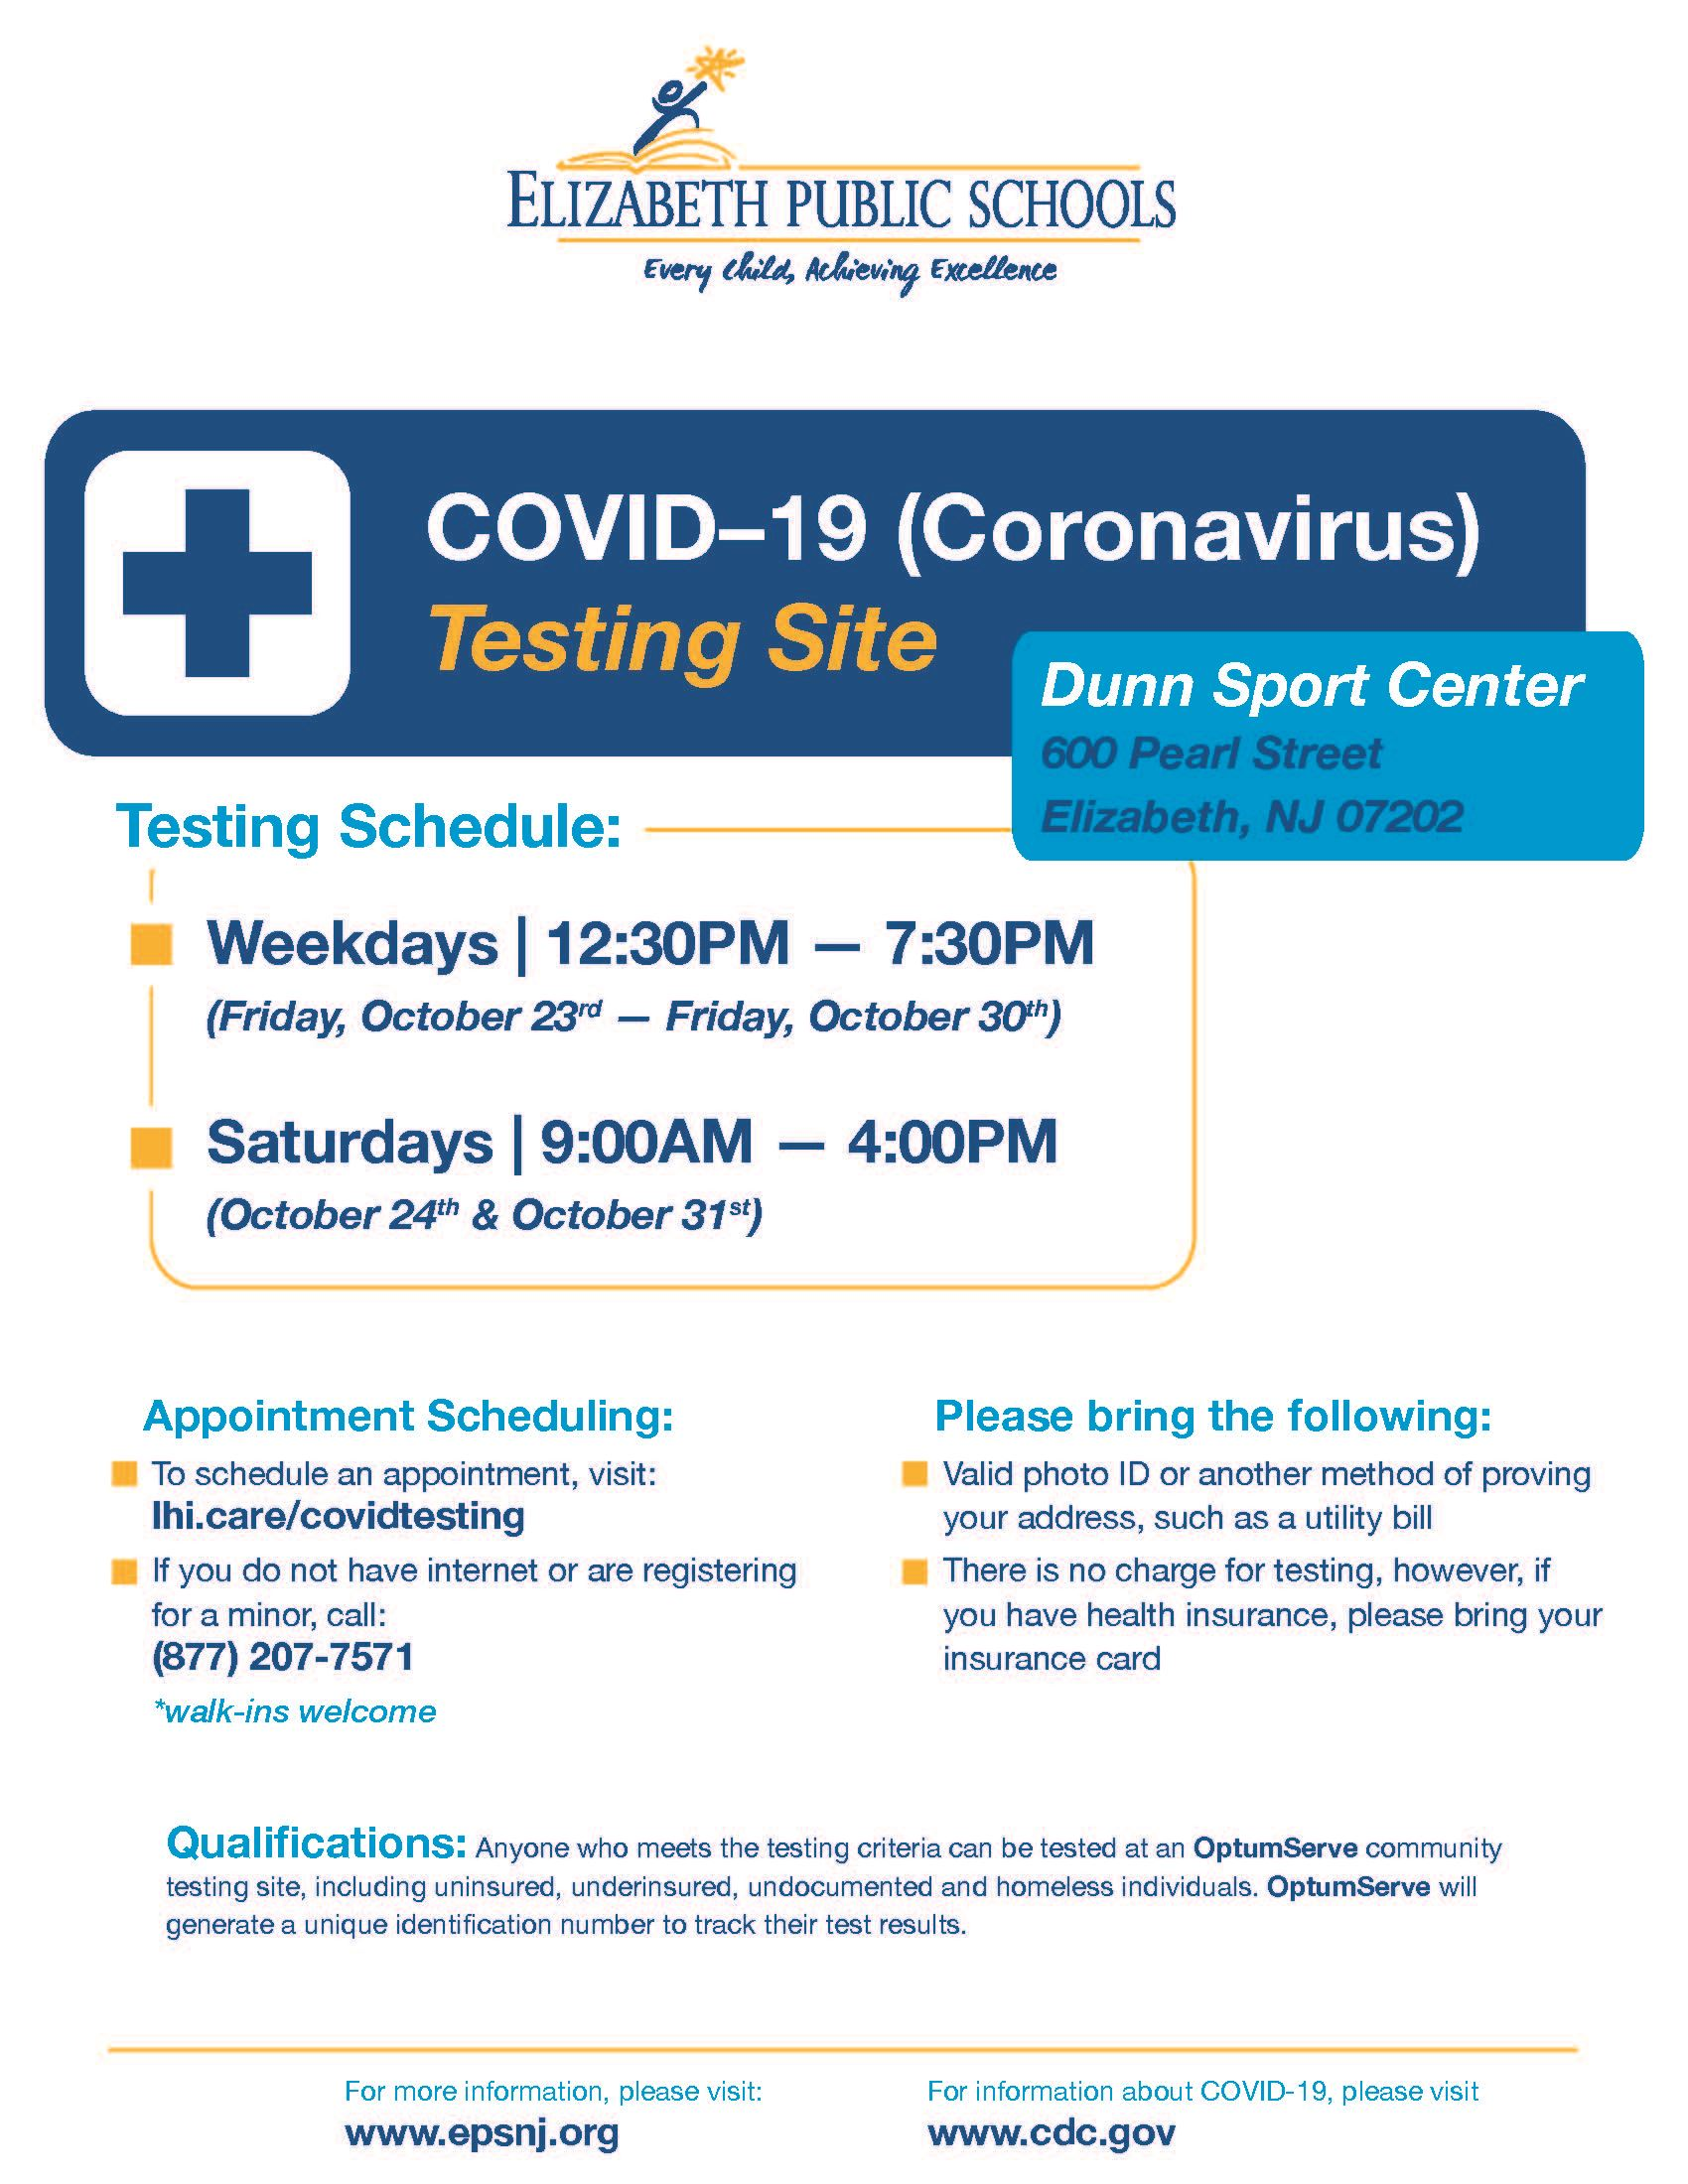 Letter to Parents and Guardians - COVID Testing at Dunn Sports Center